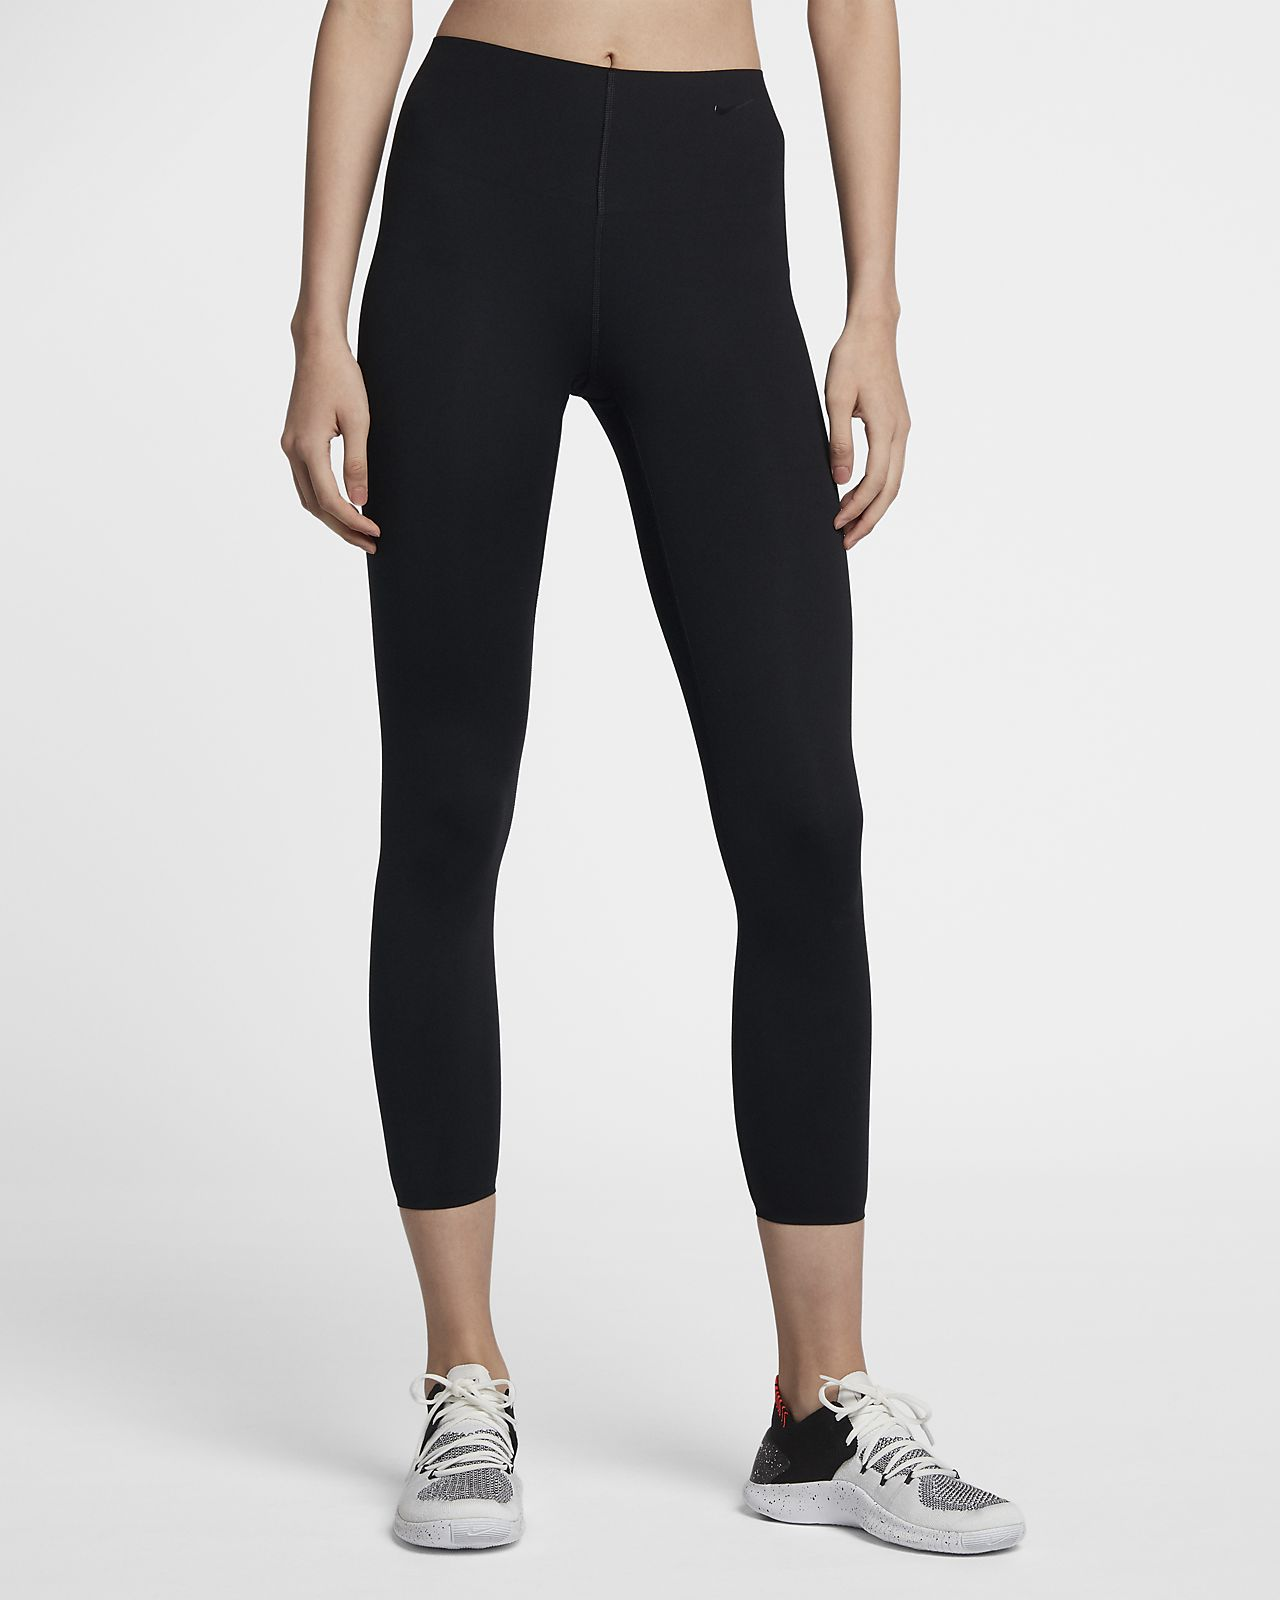 Nike Sculpt Women's 7/8 Training Tights